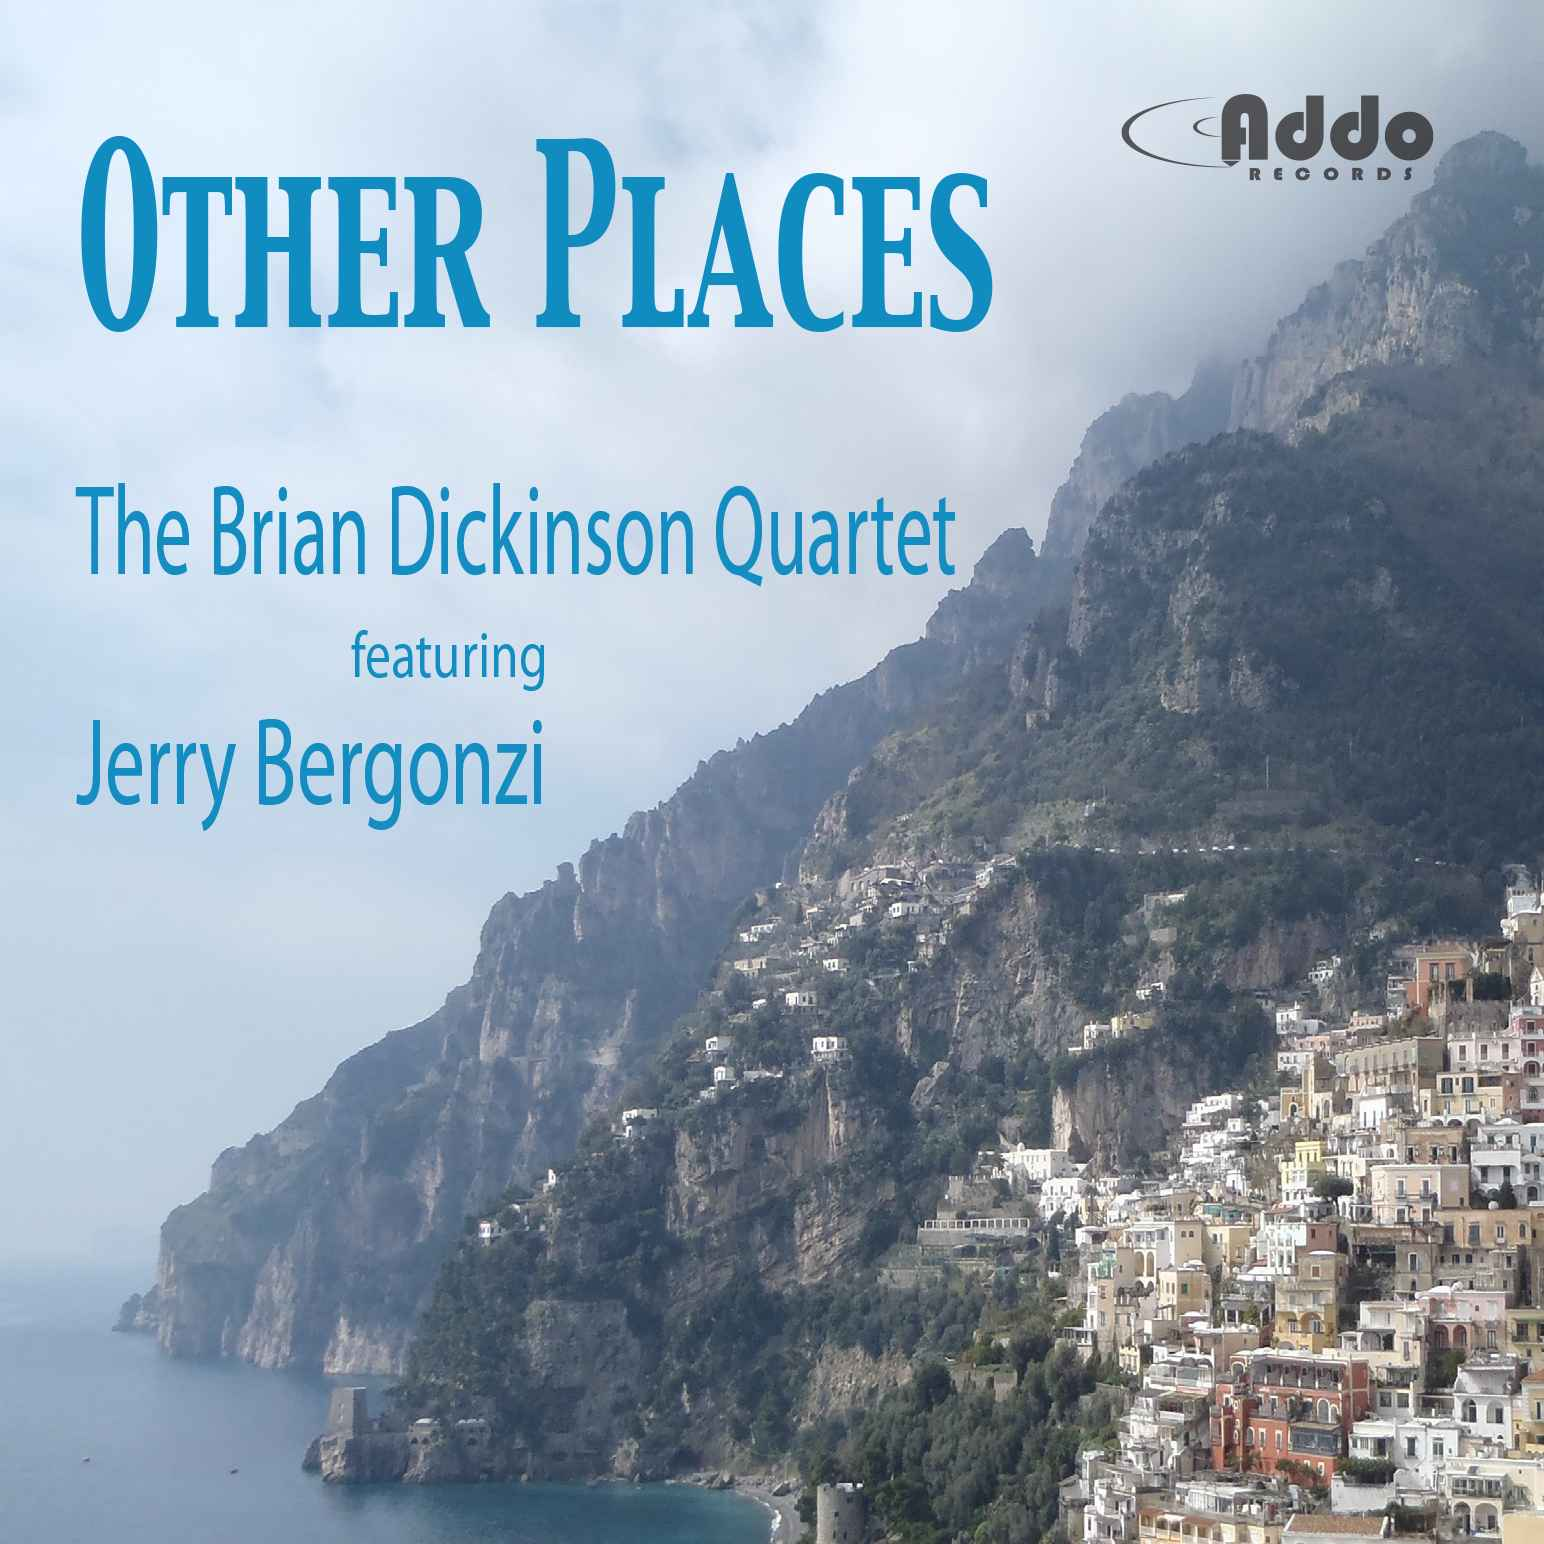 Brian Dickinson - Other Places